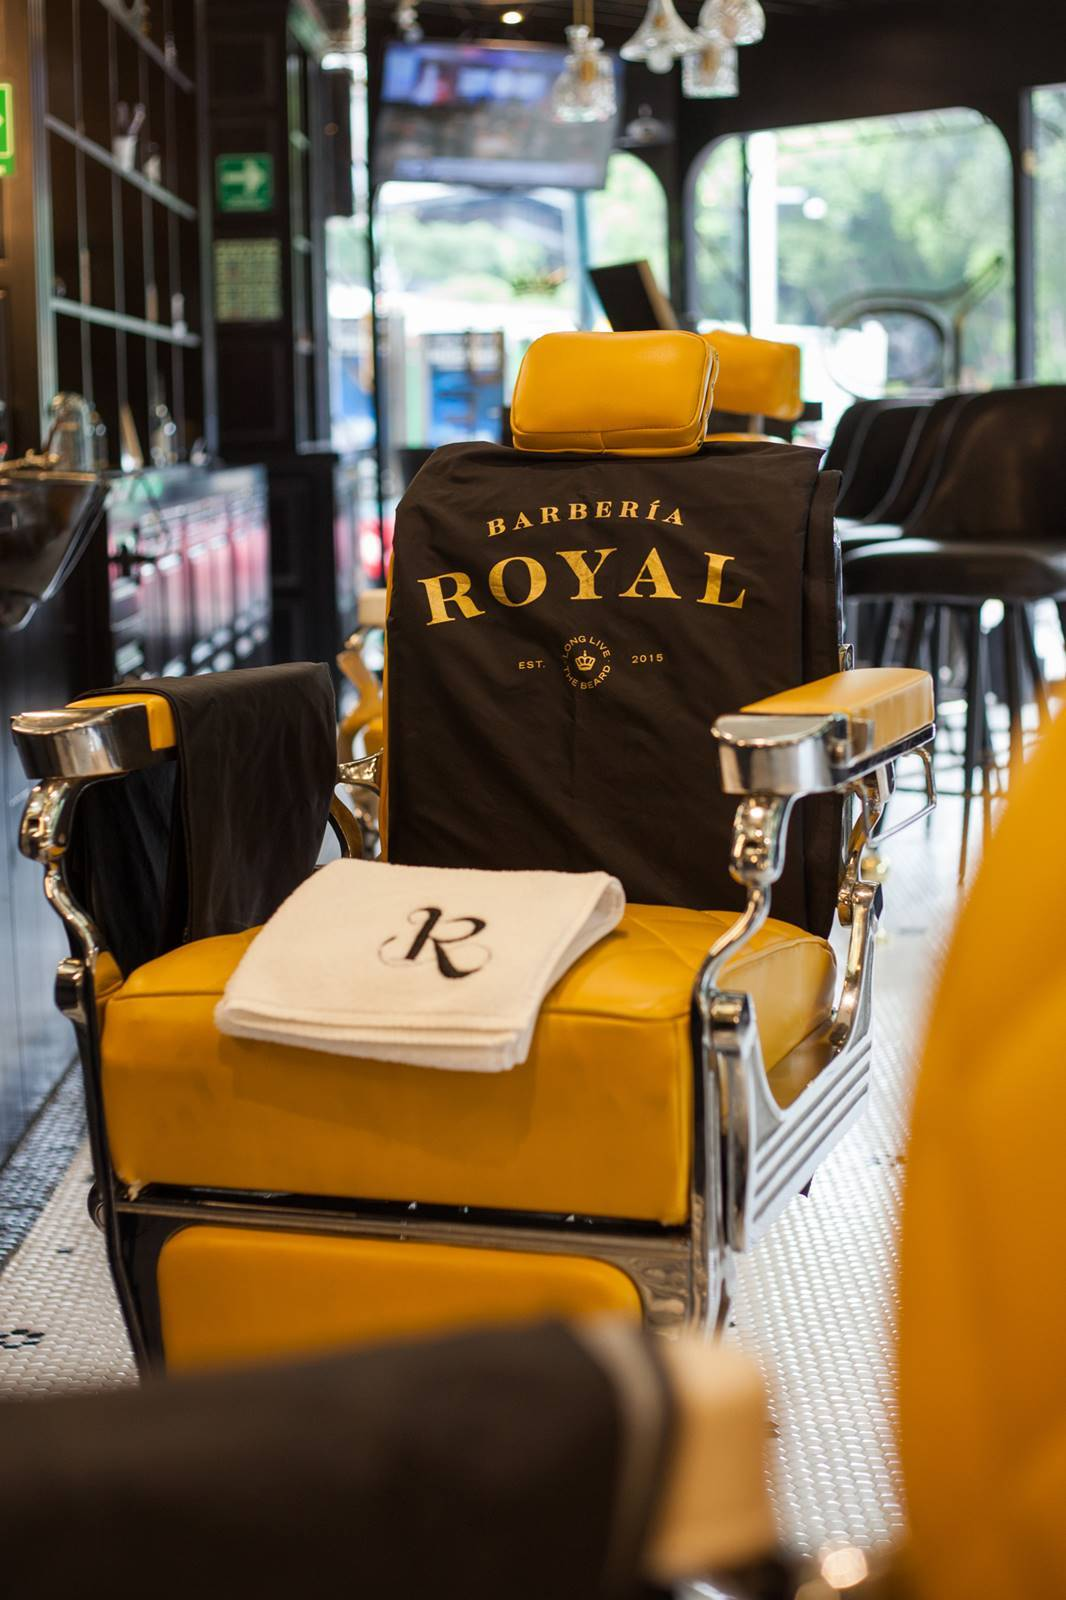 Barbería Royal